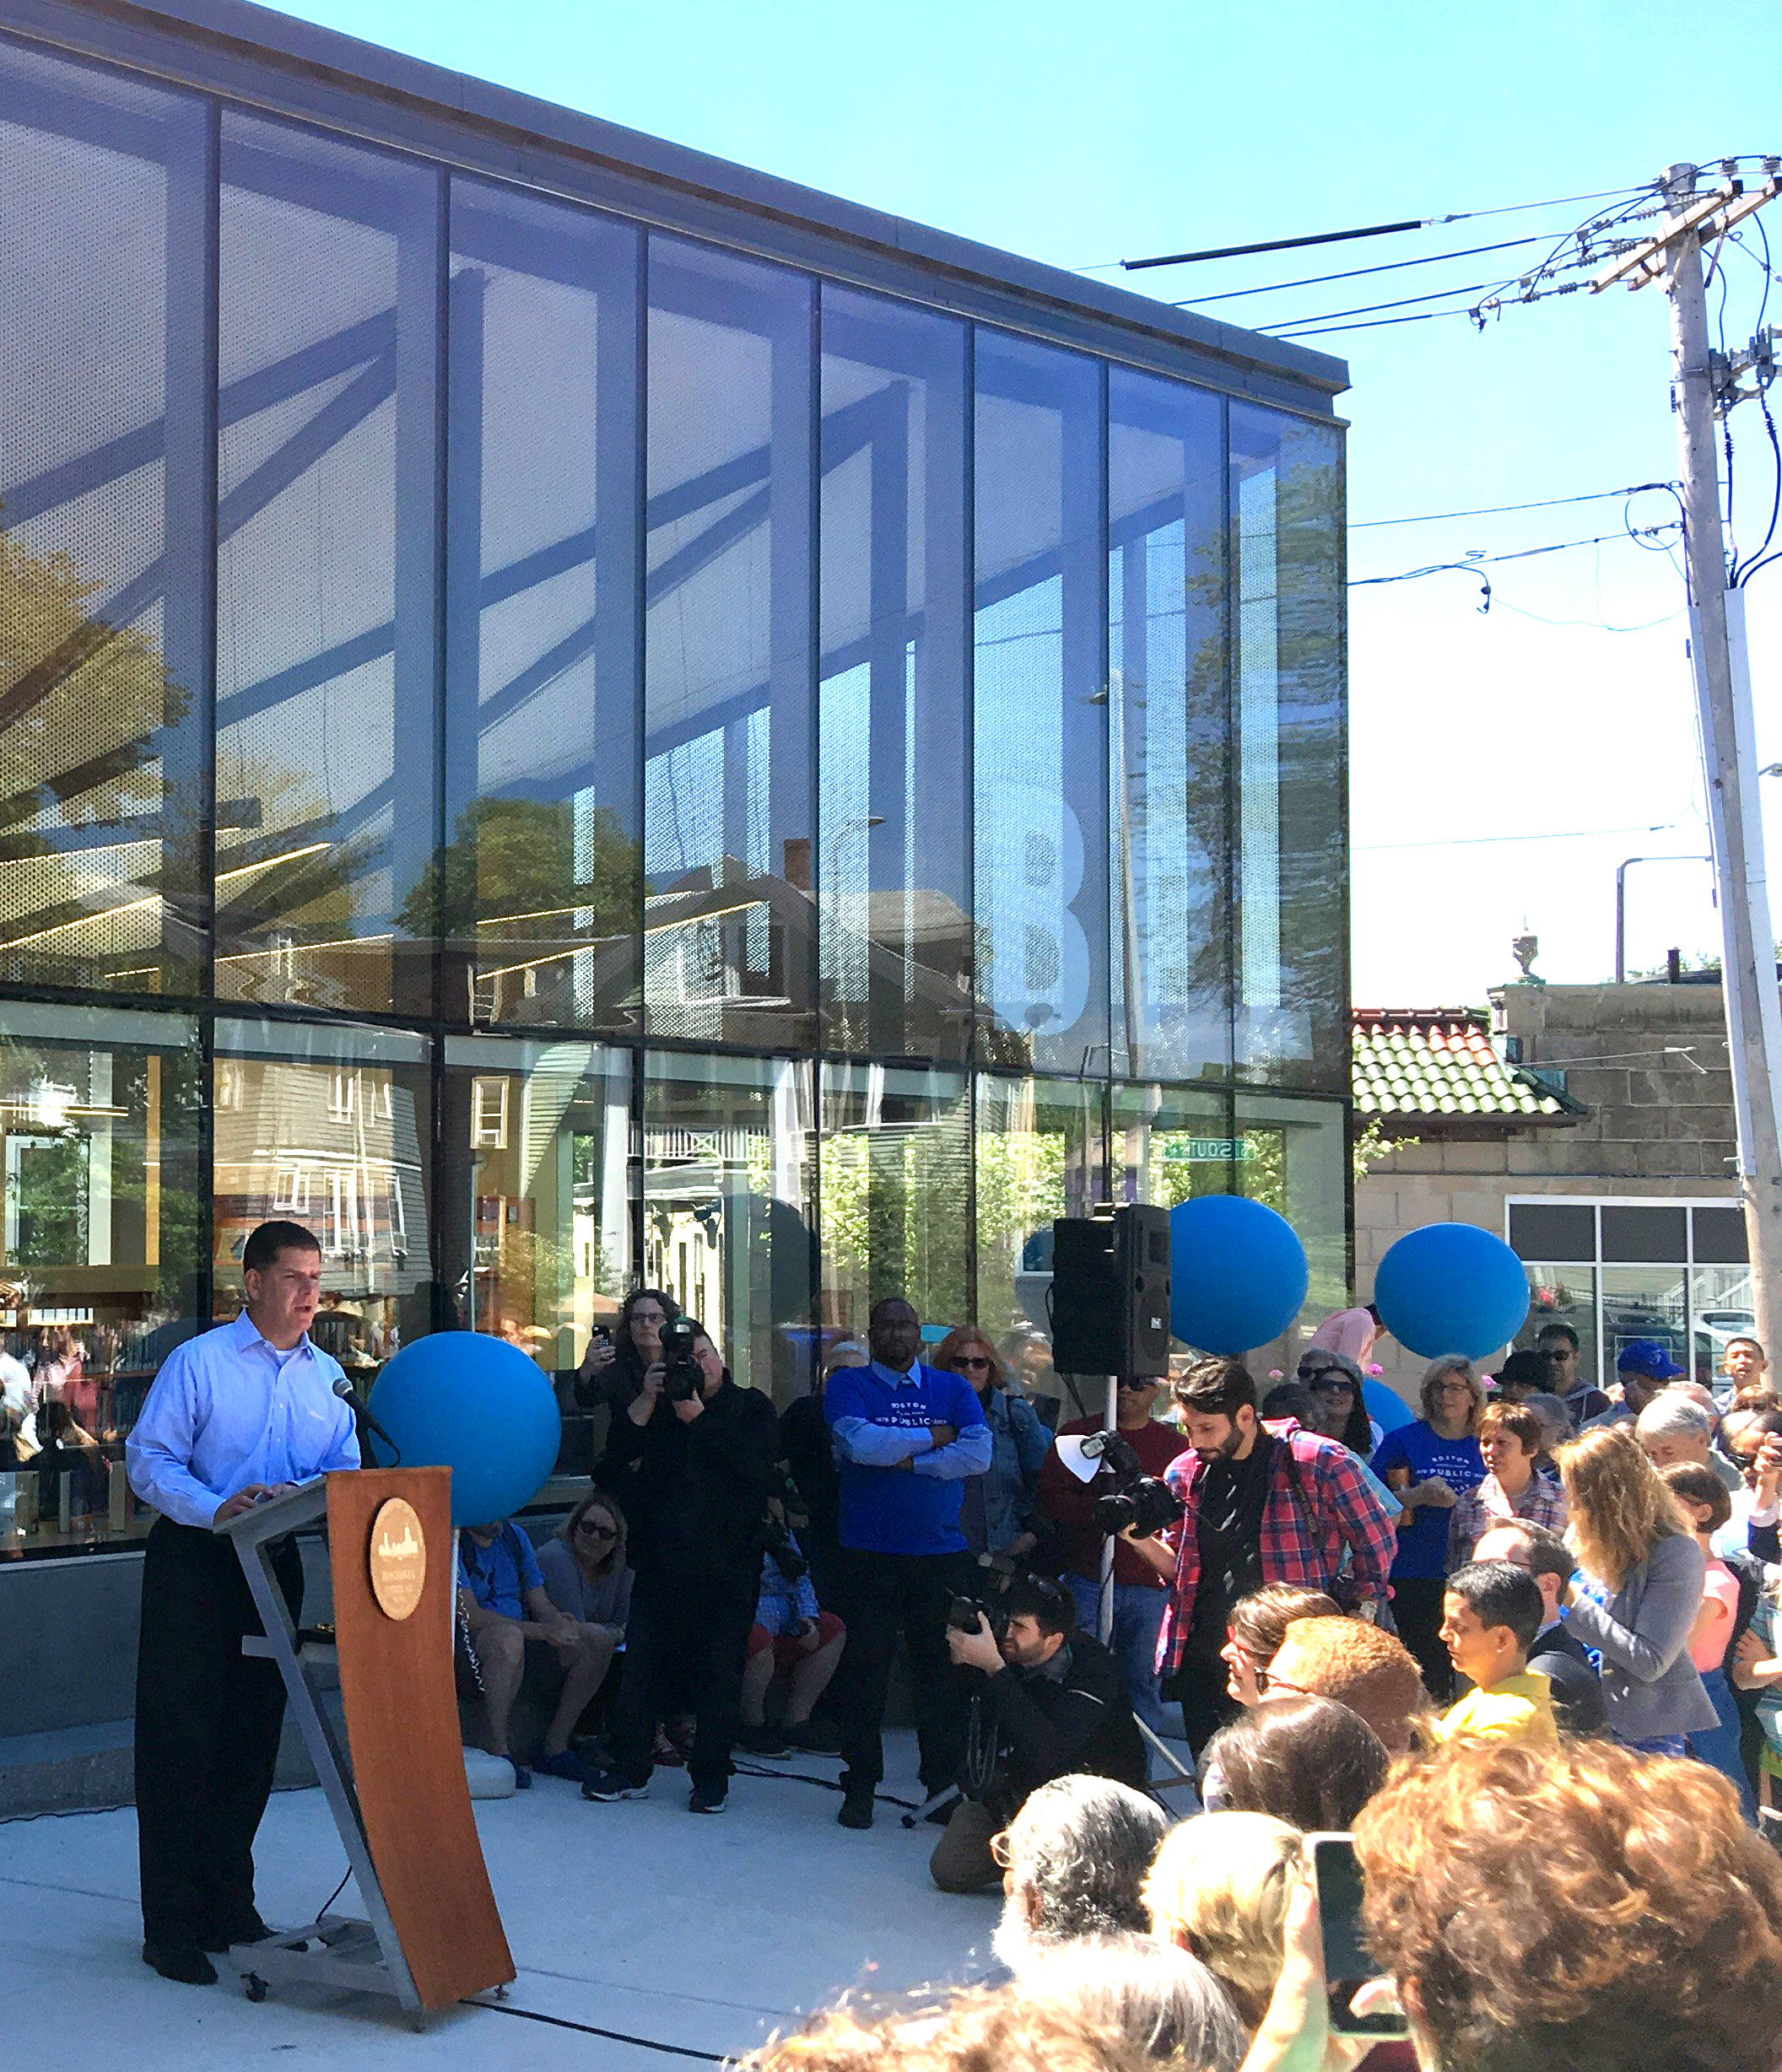 The Jamaica Plain Branch of the Boston Public Library officially reopens!